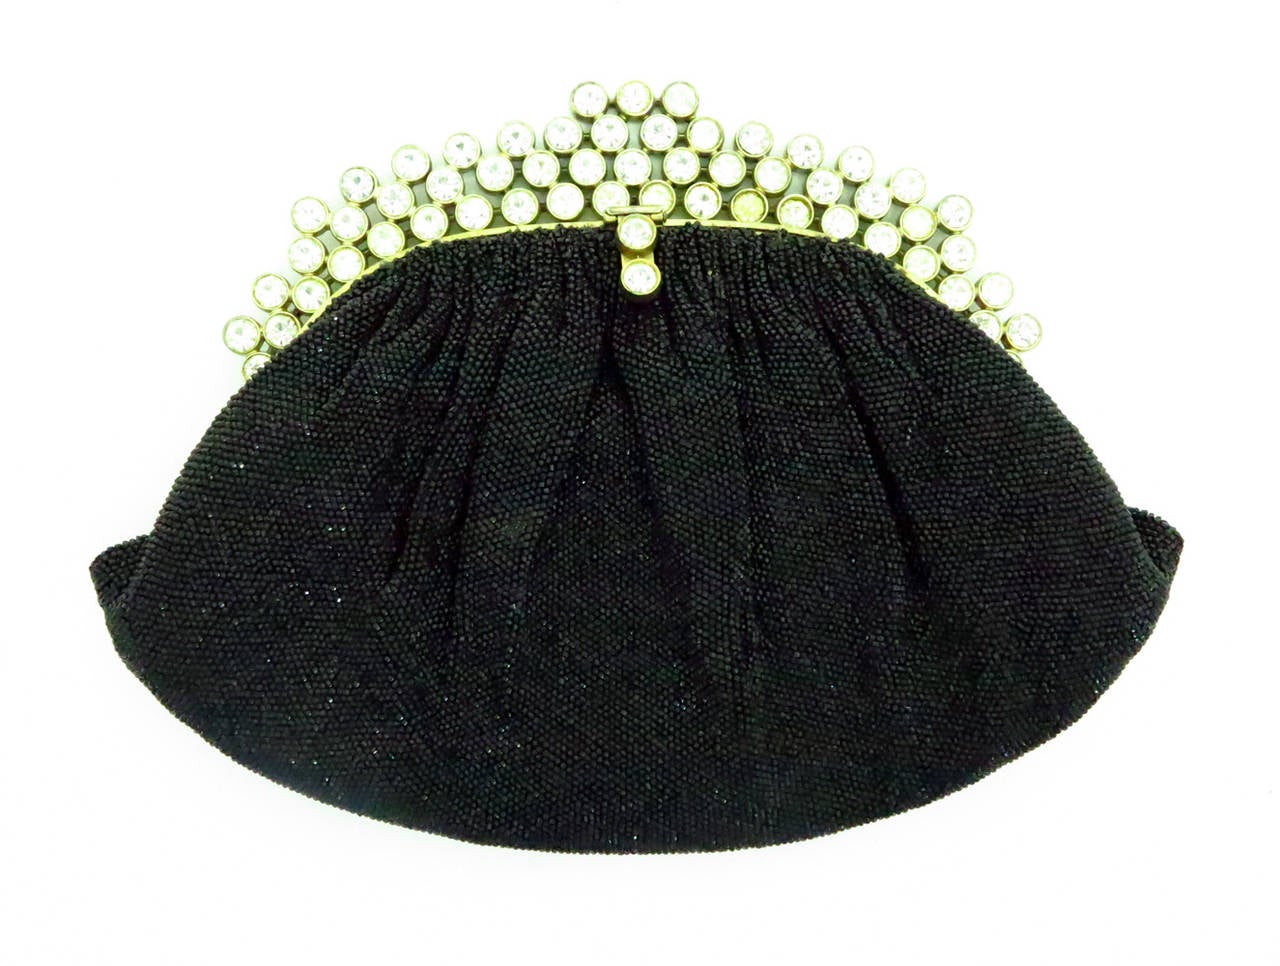 1950s Josef black caviar beaded rhinestone jewel frame evening bag handbag 3